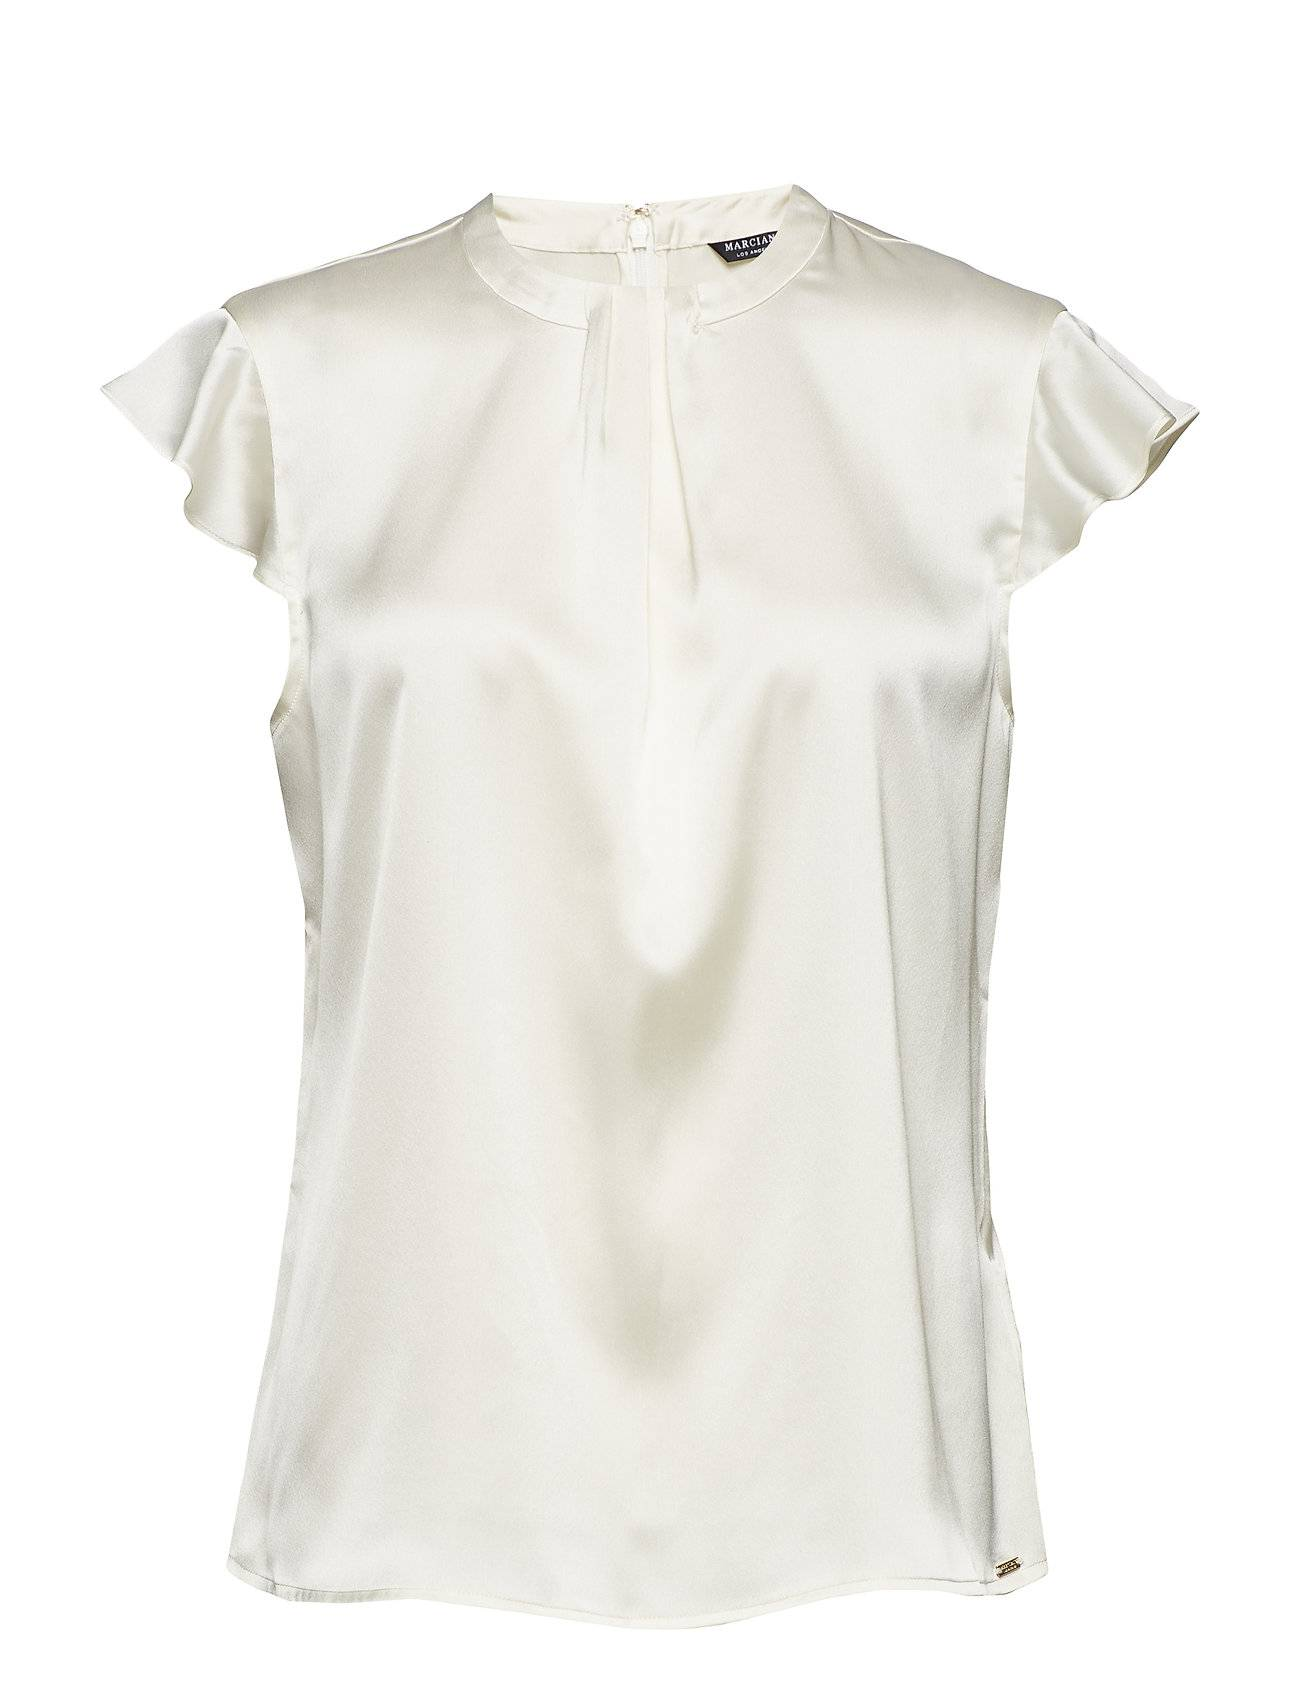 Marciano by GUESS Kiva Top